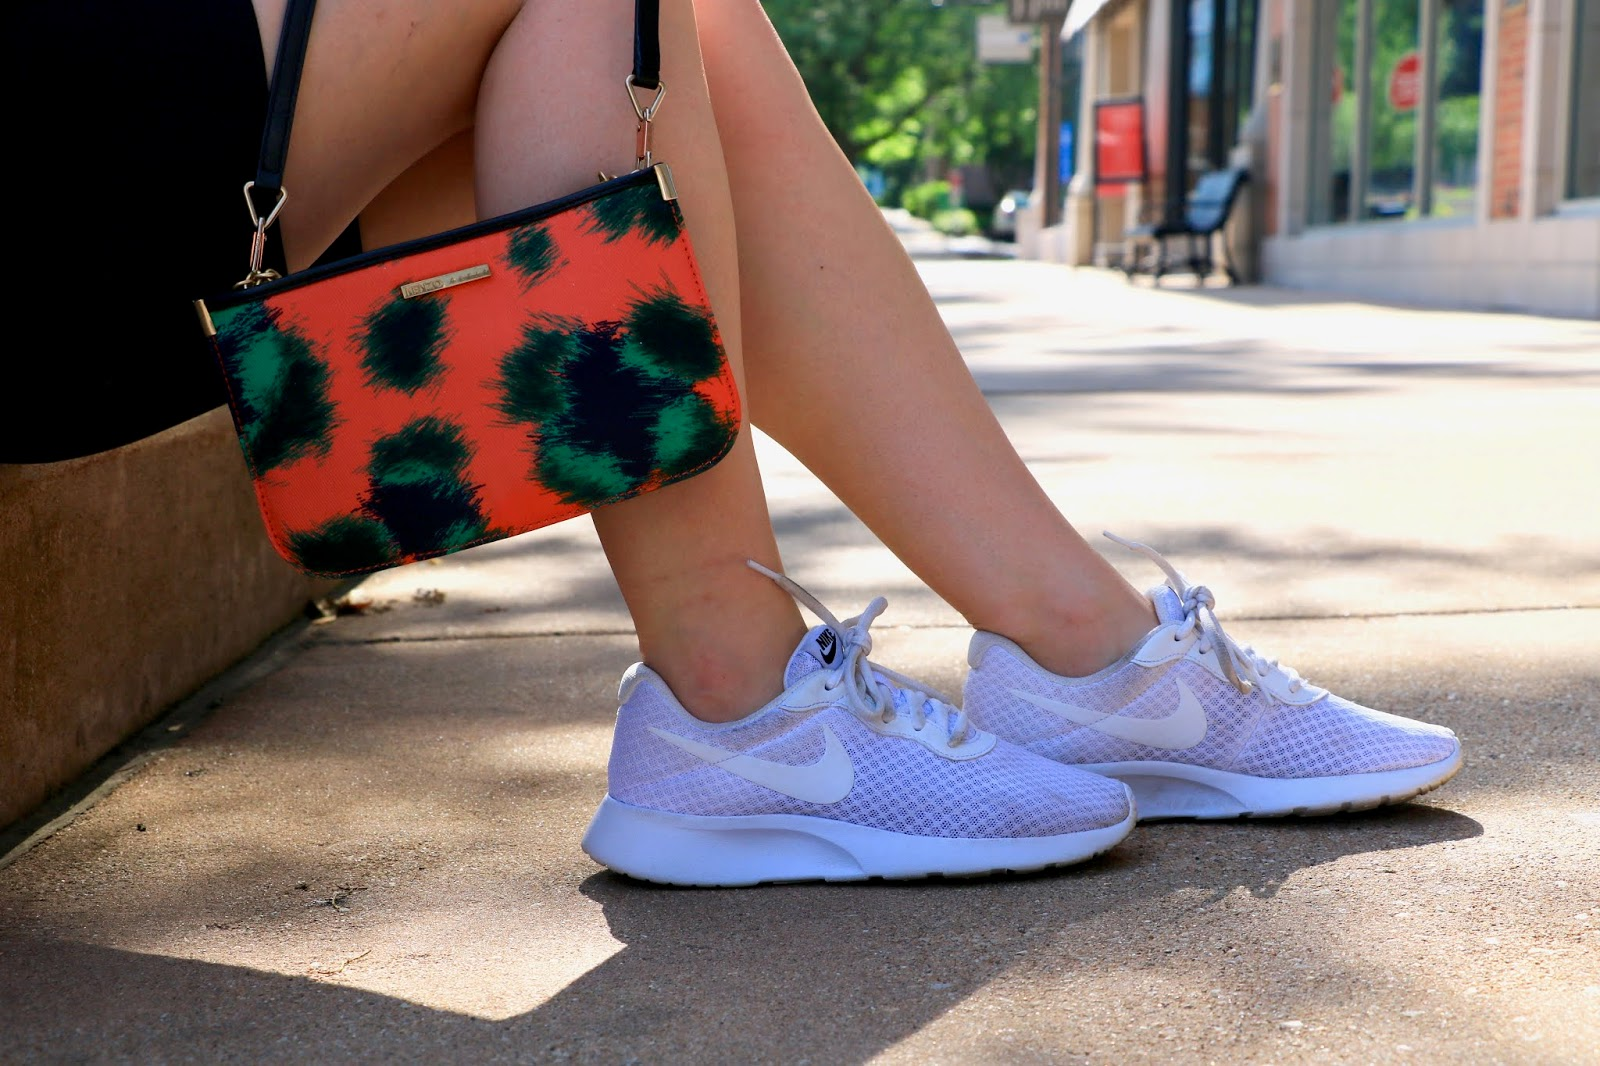 Nyc fashion blogger Kathleen Harper carrying a printed Kenzo purse and wearing white Nike sneakers.